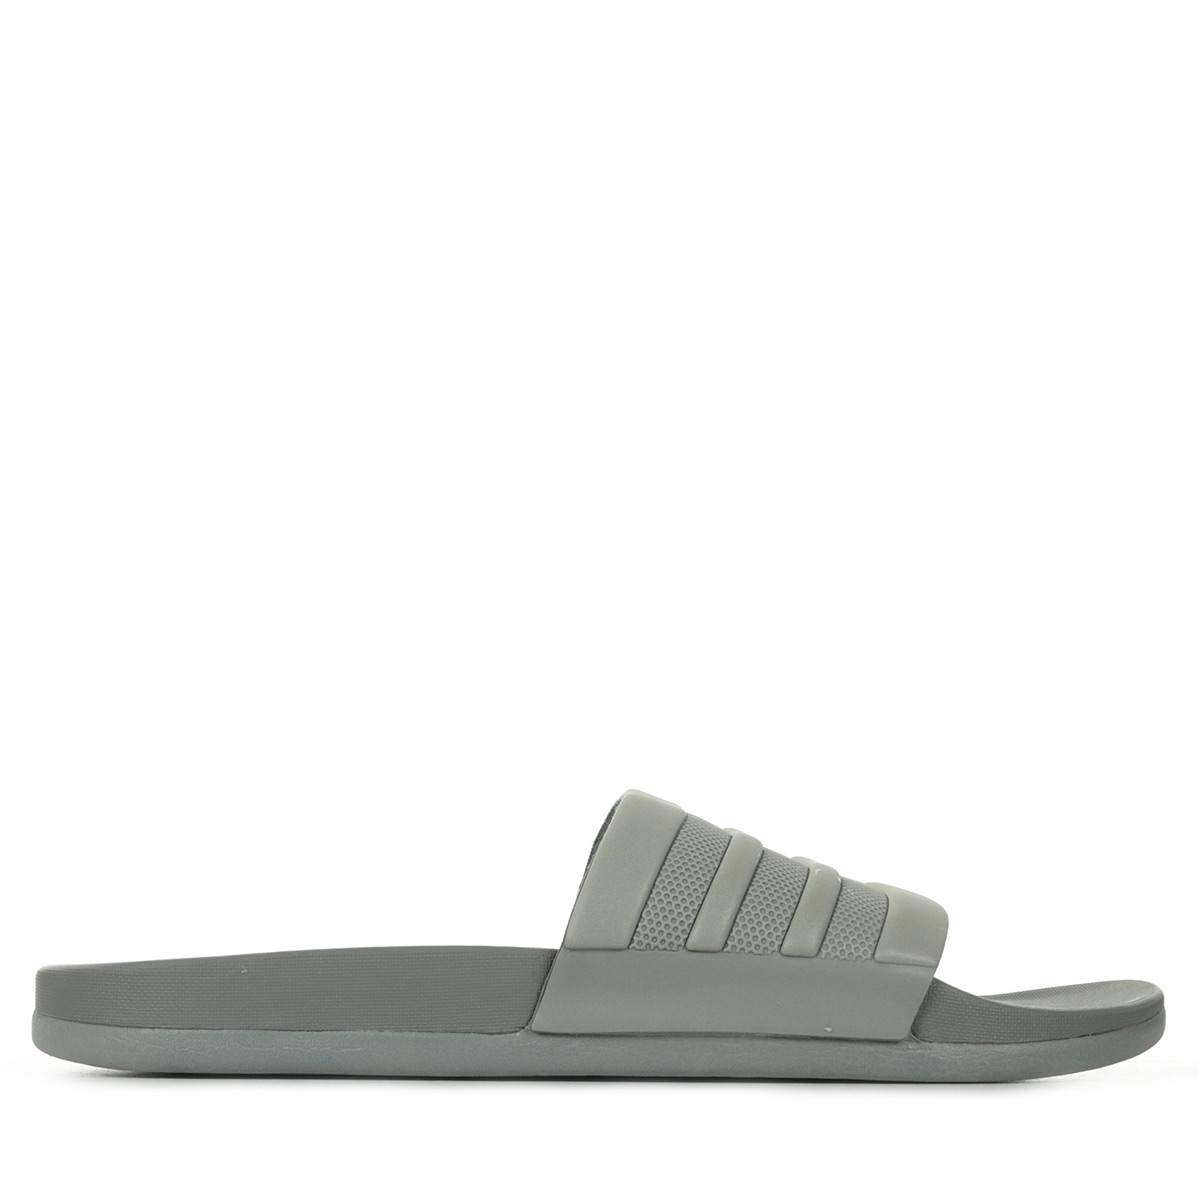 adidas chaussure adilette confort